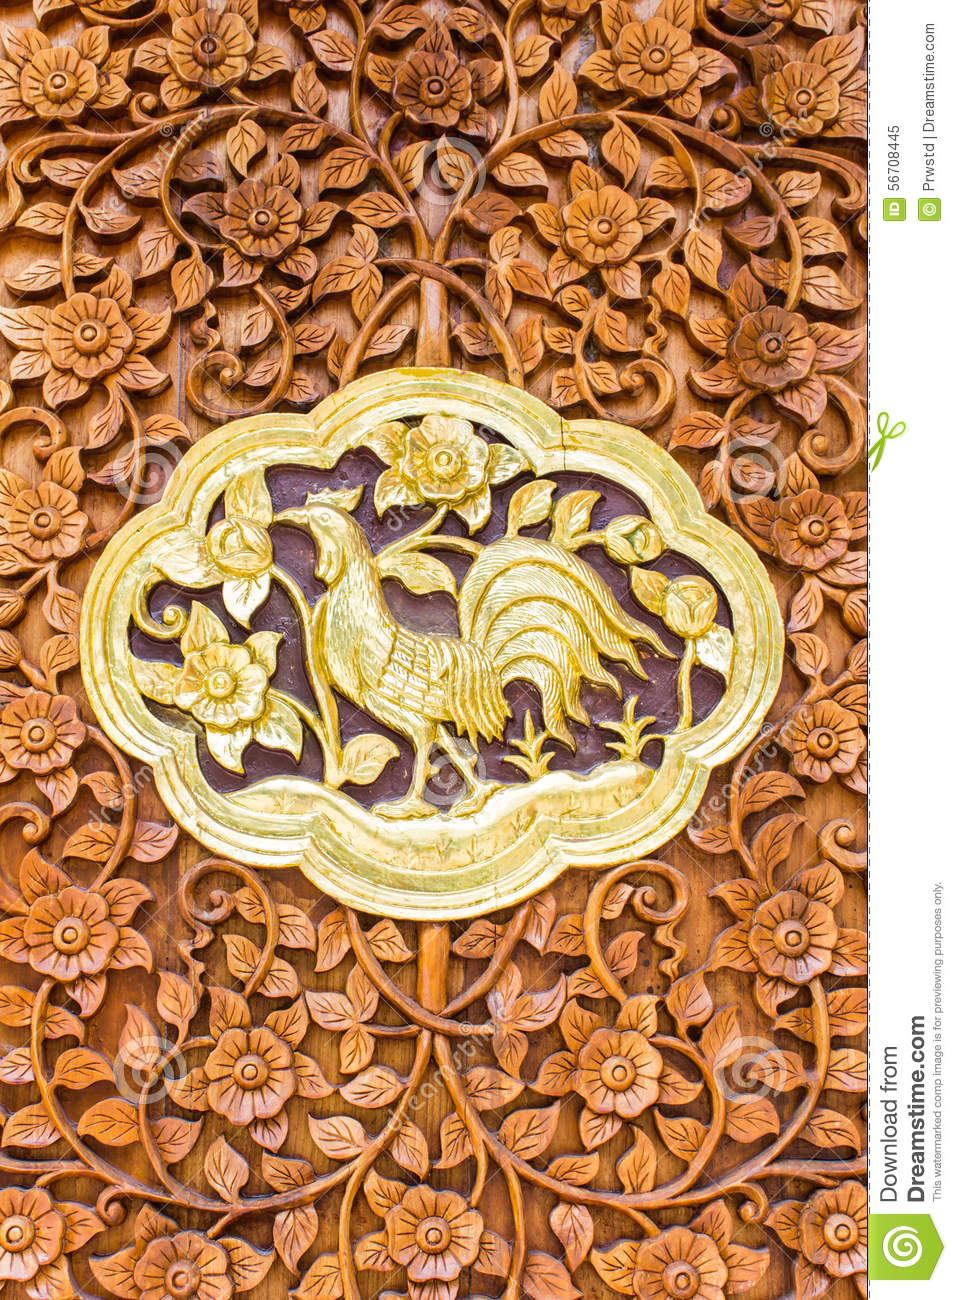 Chicken Wood Carving Wall Sculptures In Thai Temple Stock Image ...